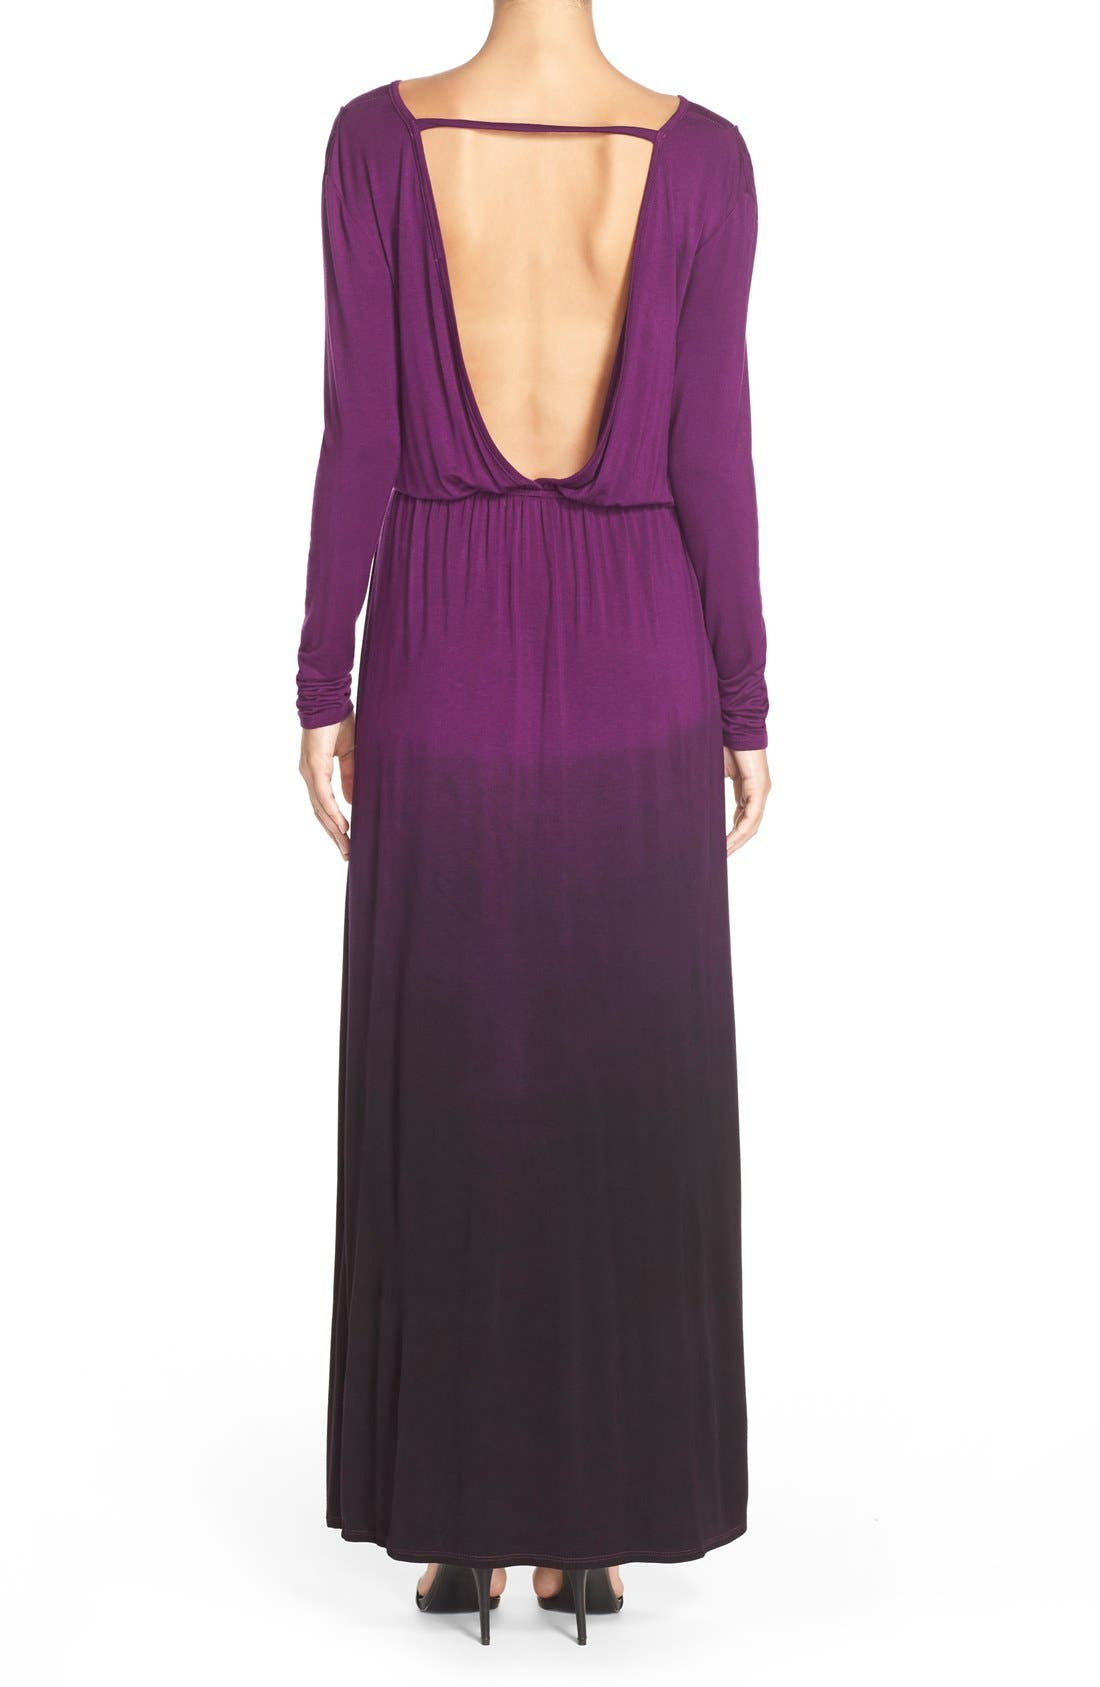 Tie Dye Faux Wrap Maxi Dress,                             Alternate thumbnail 2, color,                             PURPLE/ BLACK OMBRE